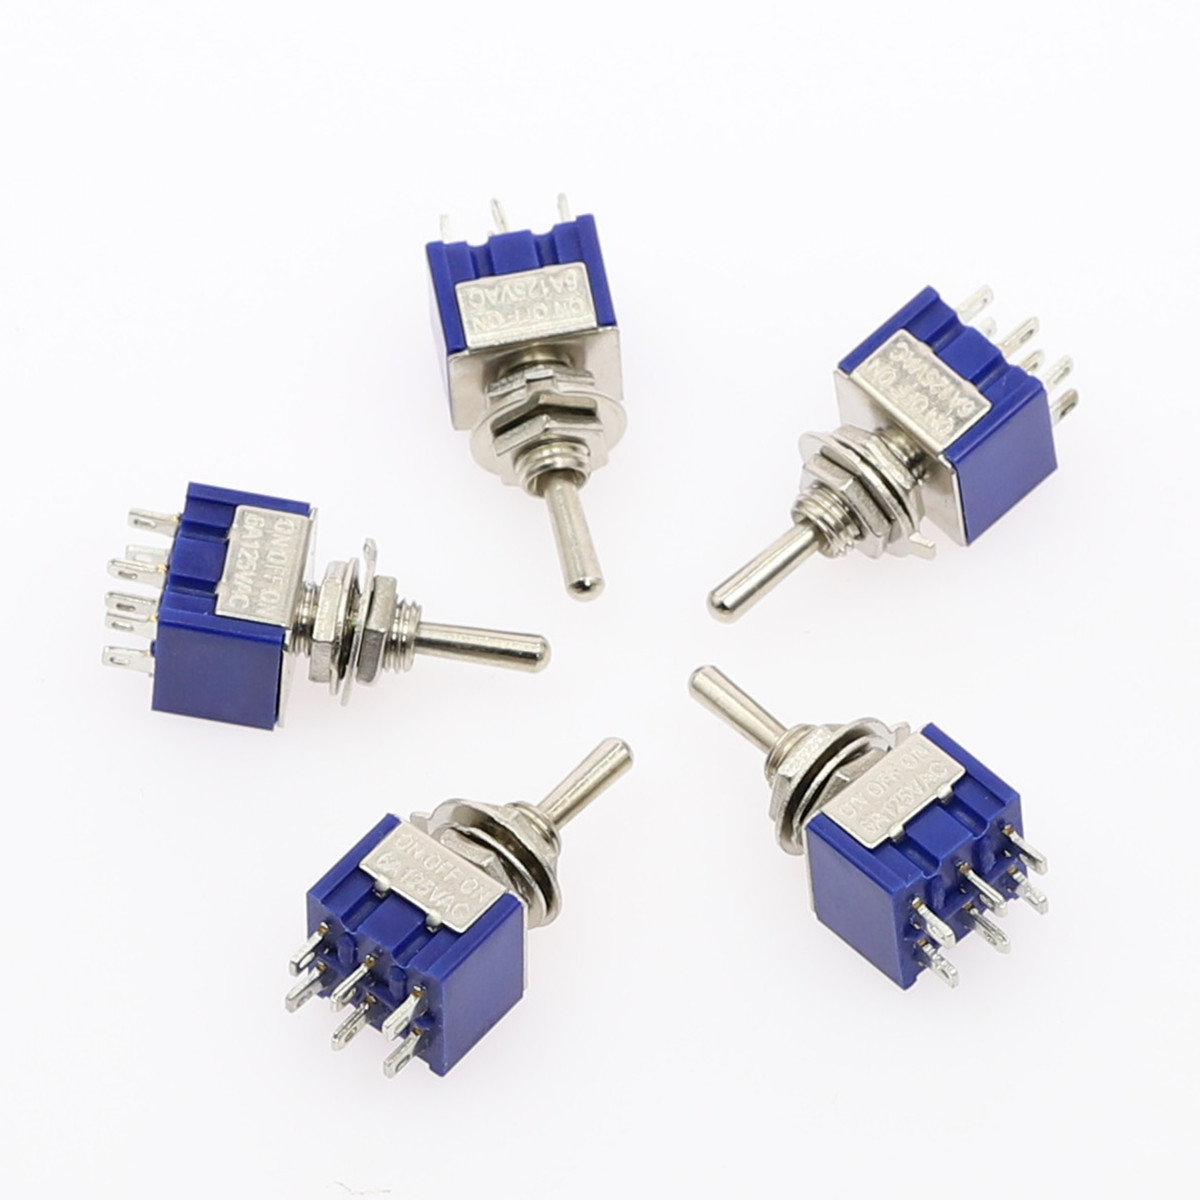 5Pcs Miniature Toggle Switch Single Pole Double Throw ON-OFF-ON /ON-ON 120VAC 6A 1/4 Inch Mounting MTS-102 103 202 203